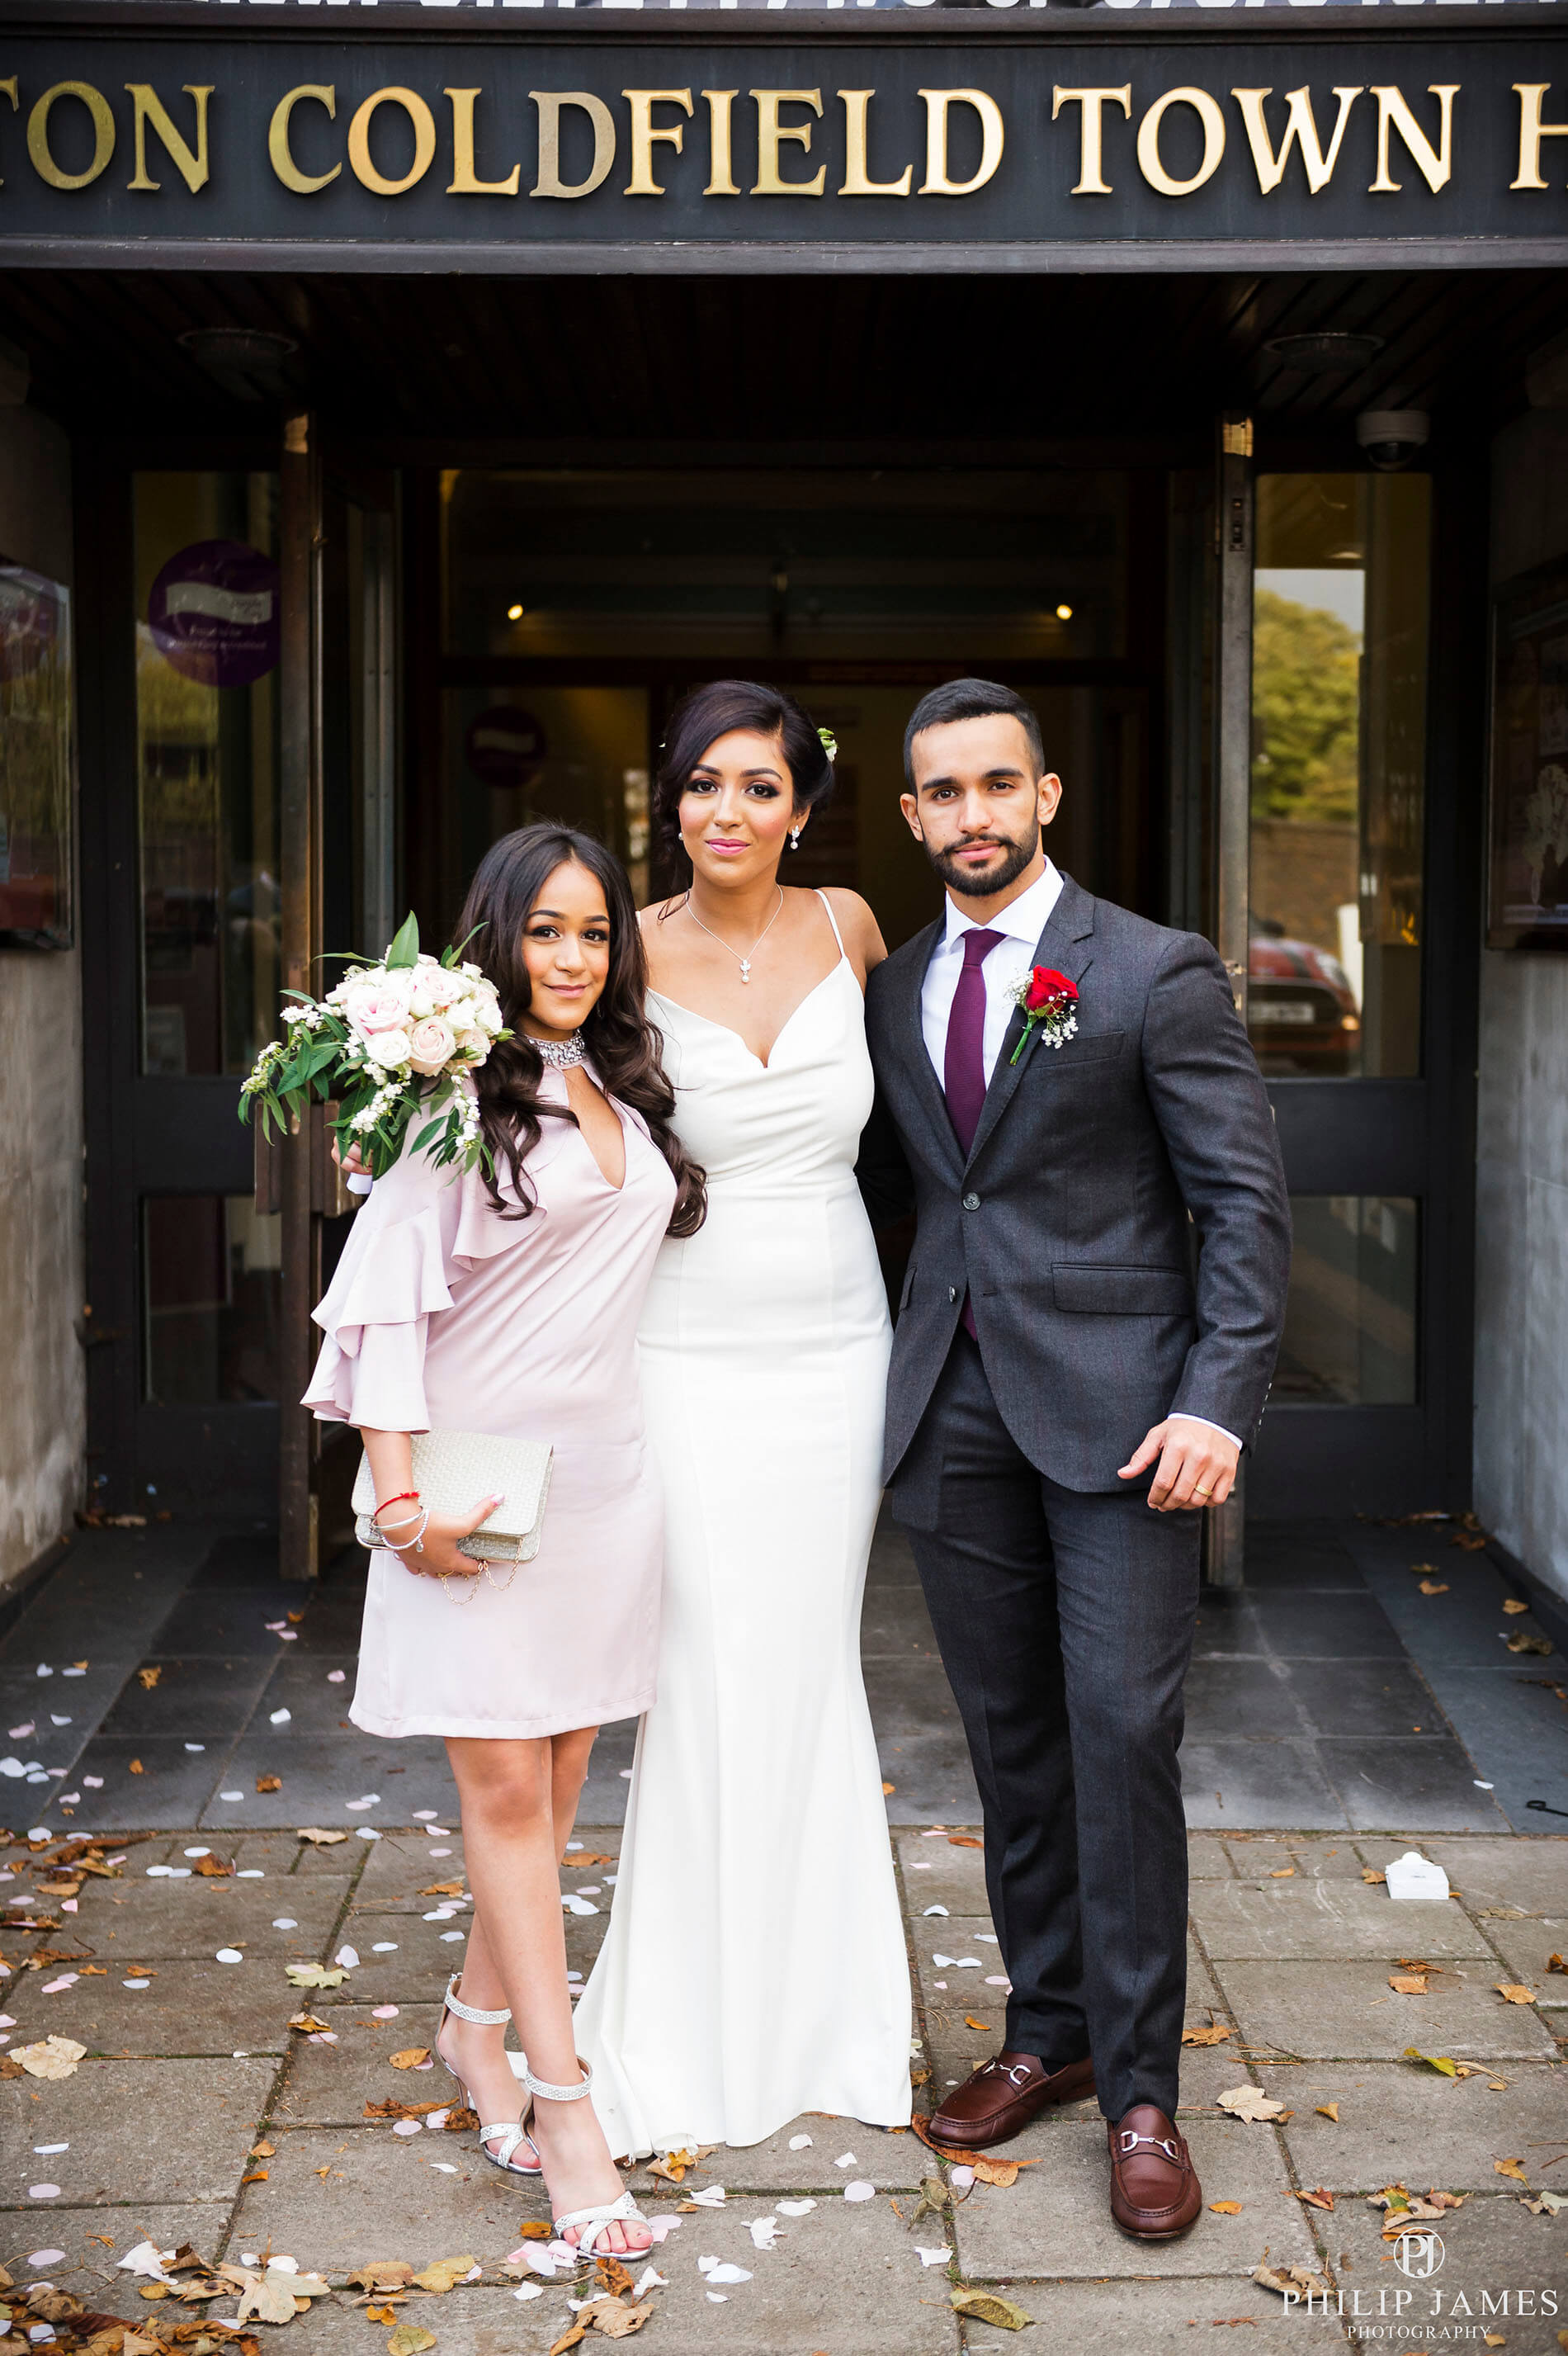 Sutton Wedding Photographer - Philip James specialzies in Wedding Photography Birmingham, The West Midlands, Solihull and all over the UK. Sukhpreet & Ramandeep's Wedding